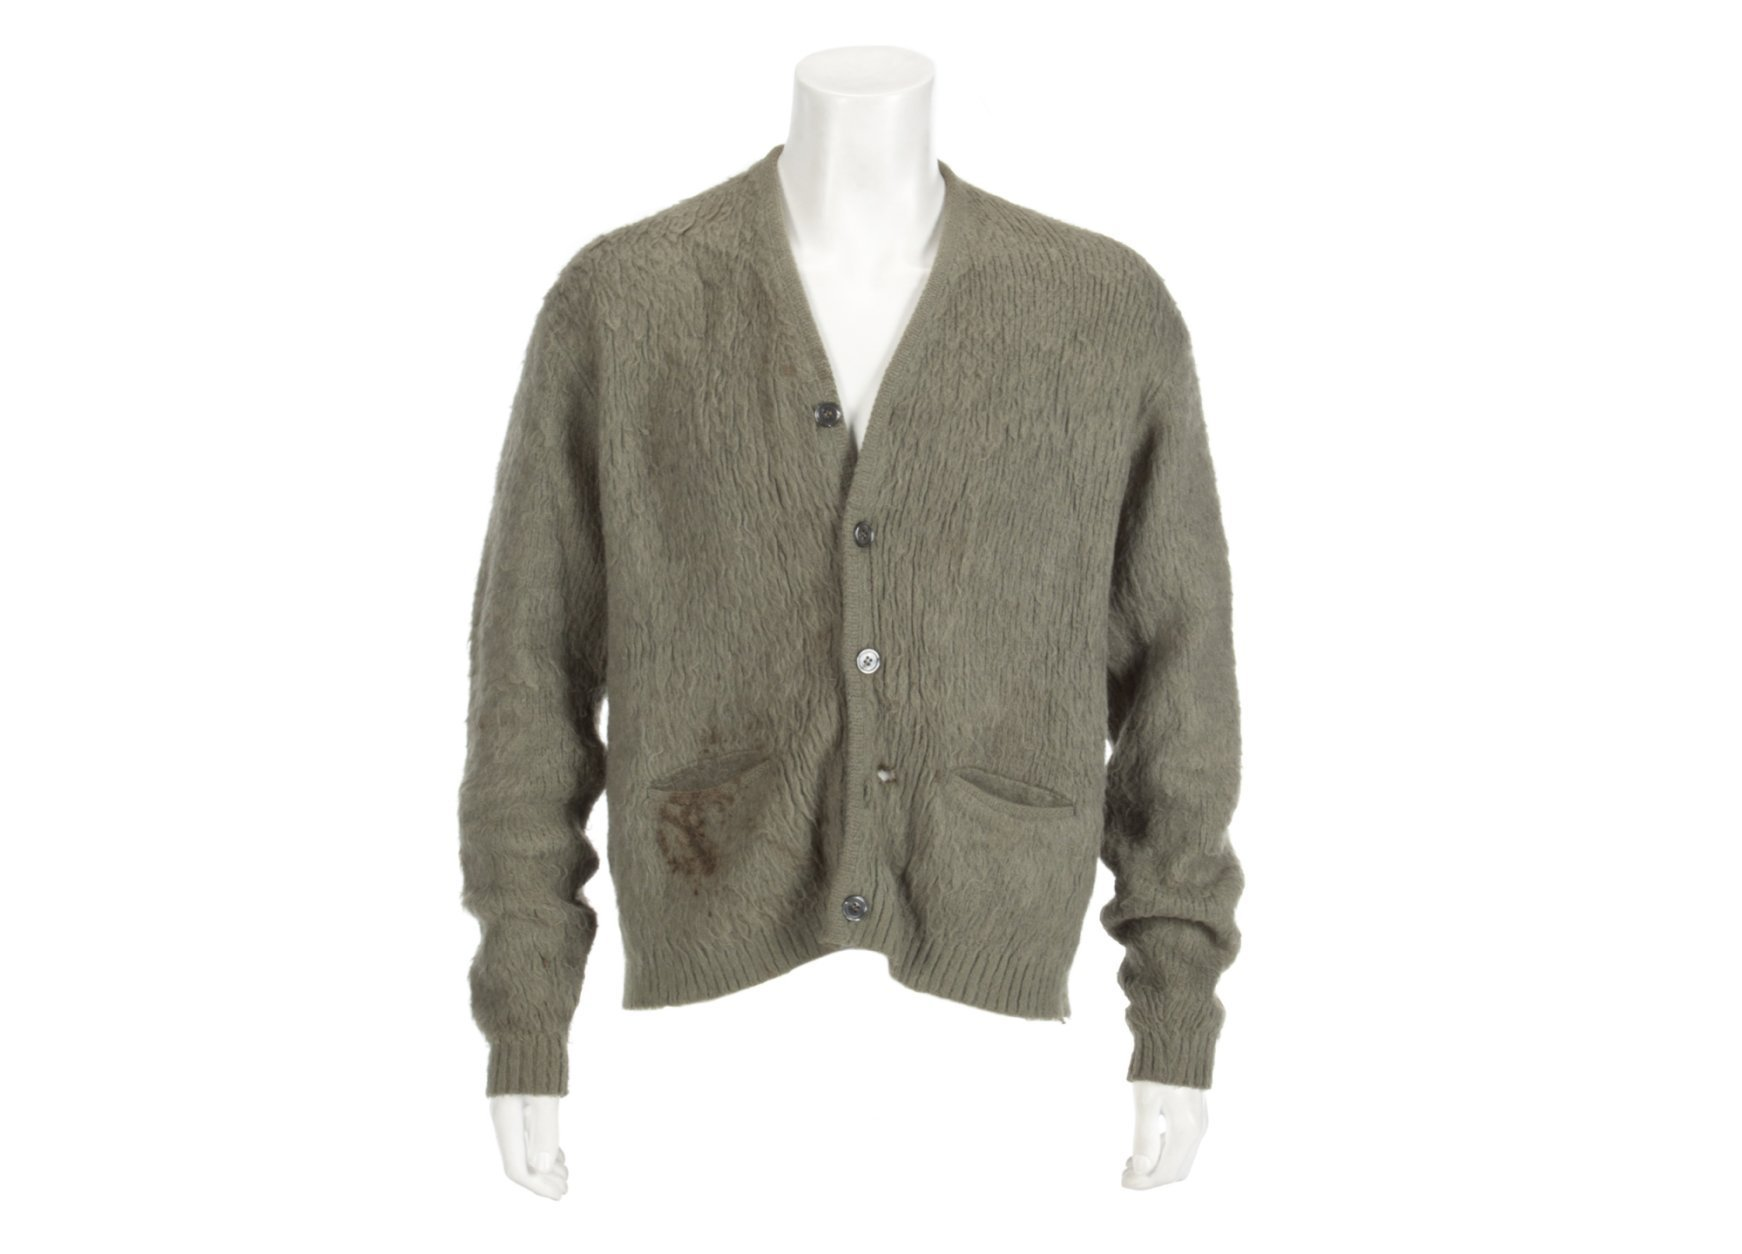 """This image released by Julien's Auctions shows an olive green cardigan sweater worn by Nirvana frontman Kurt Cobain during Nirvana's MTV's """"Unplugged"""" performance. The sweater, along with Cobain's custom Fender guitar, are among many rock and roll items up for auction on Oct. 25 and 26. (Julien's Auctions via AP)"""